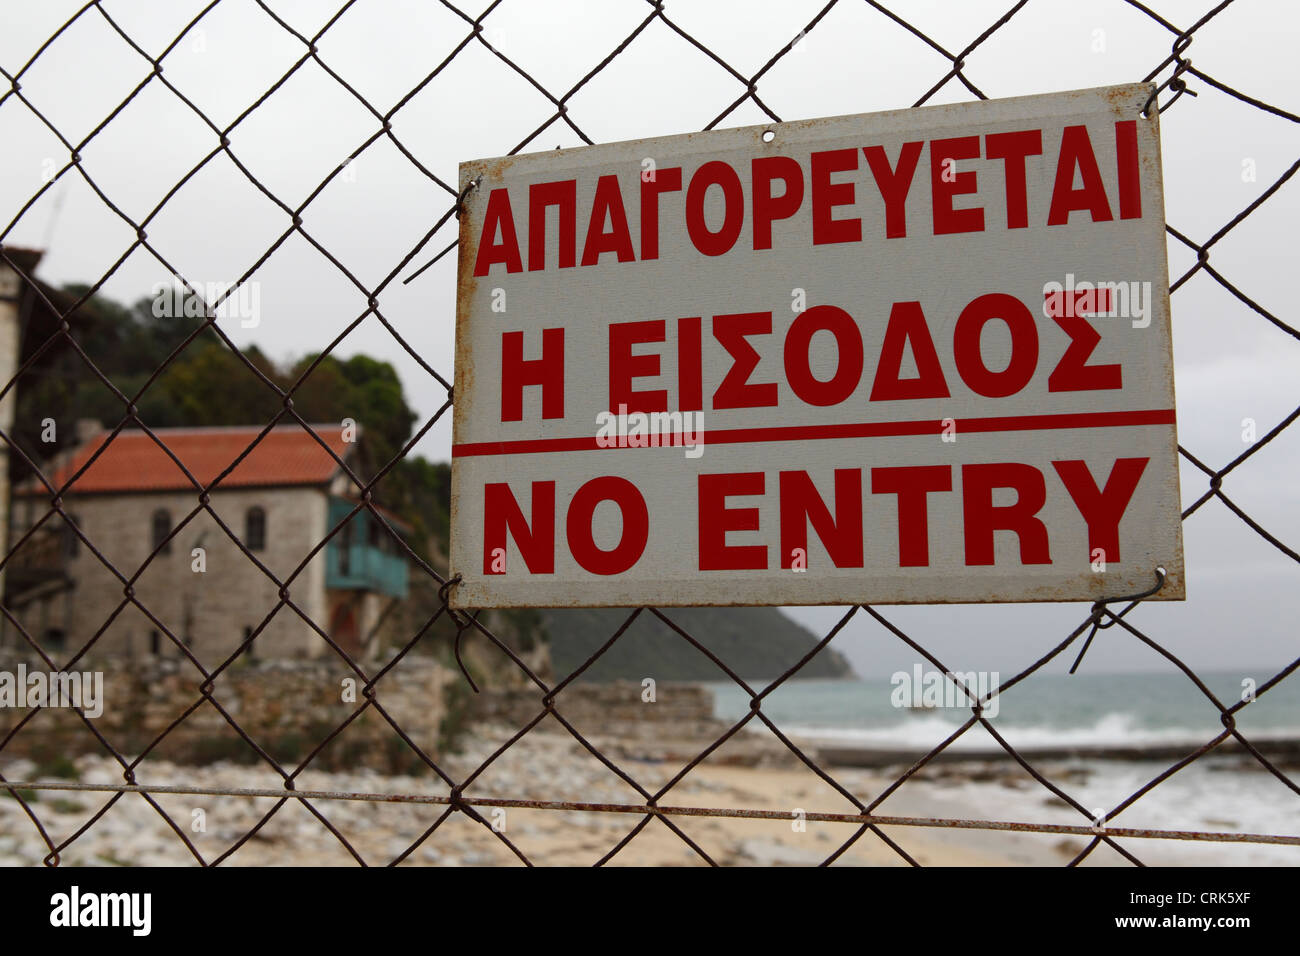 A sign emphasizes that there is no entry via land to Mount Athos, Greece. - Stock Image